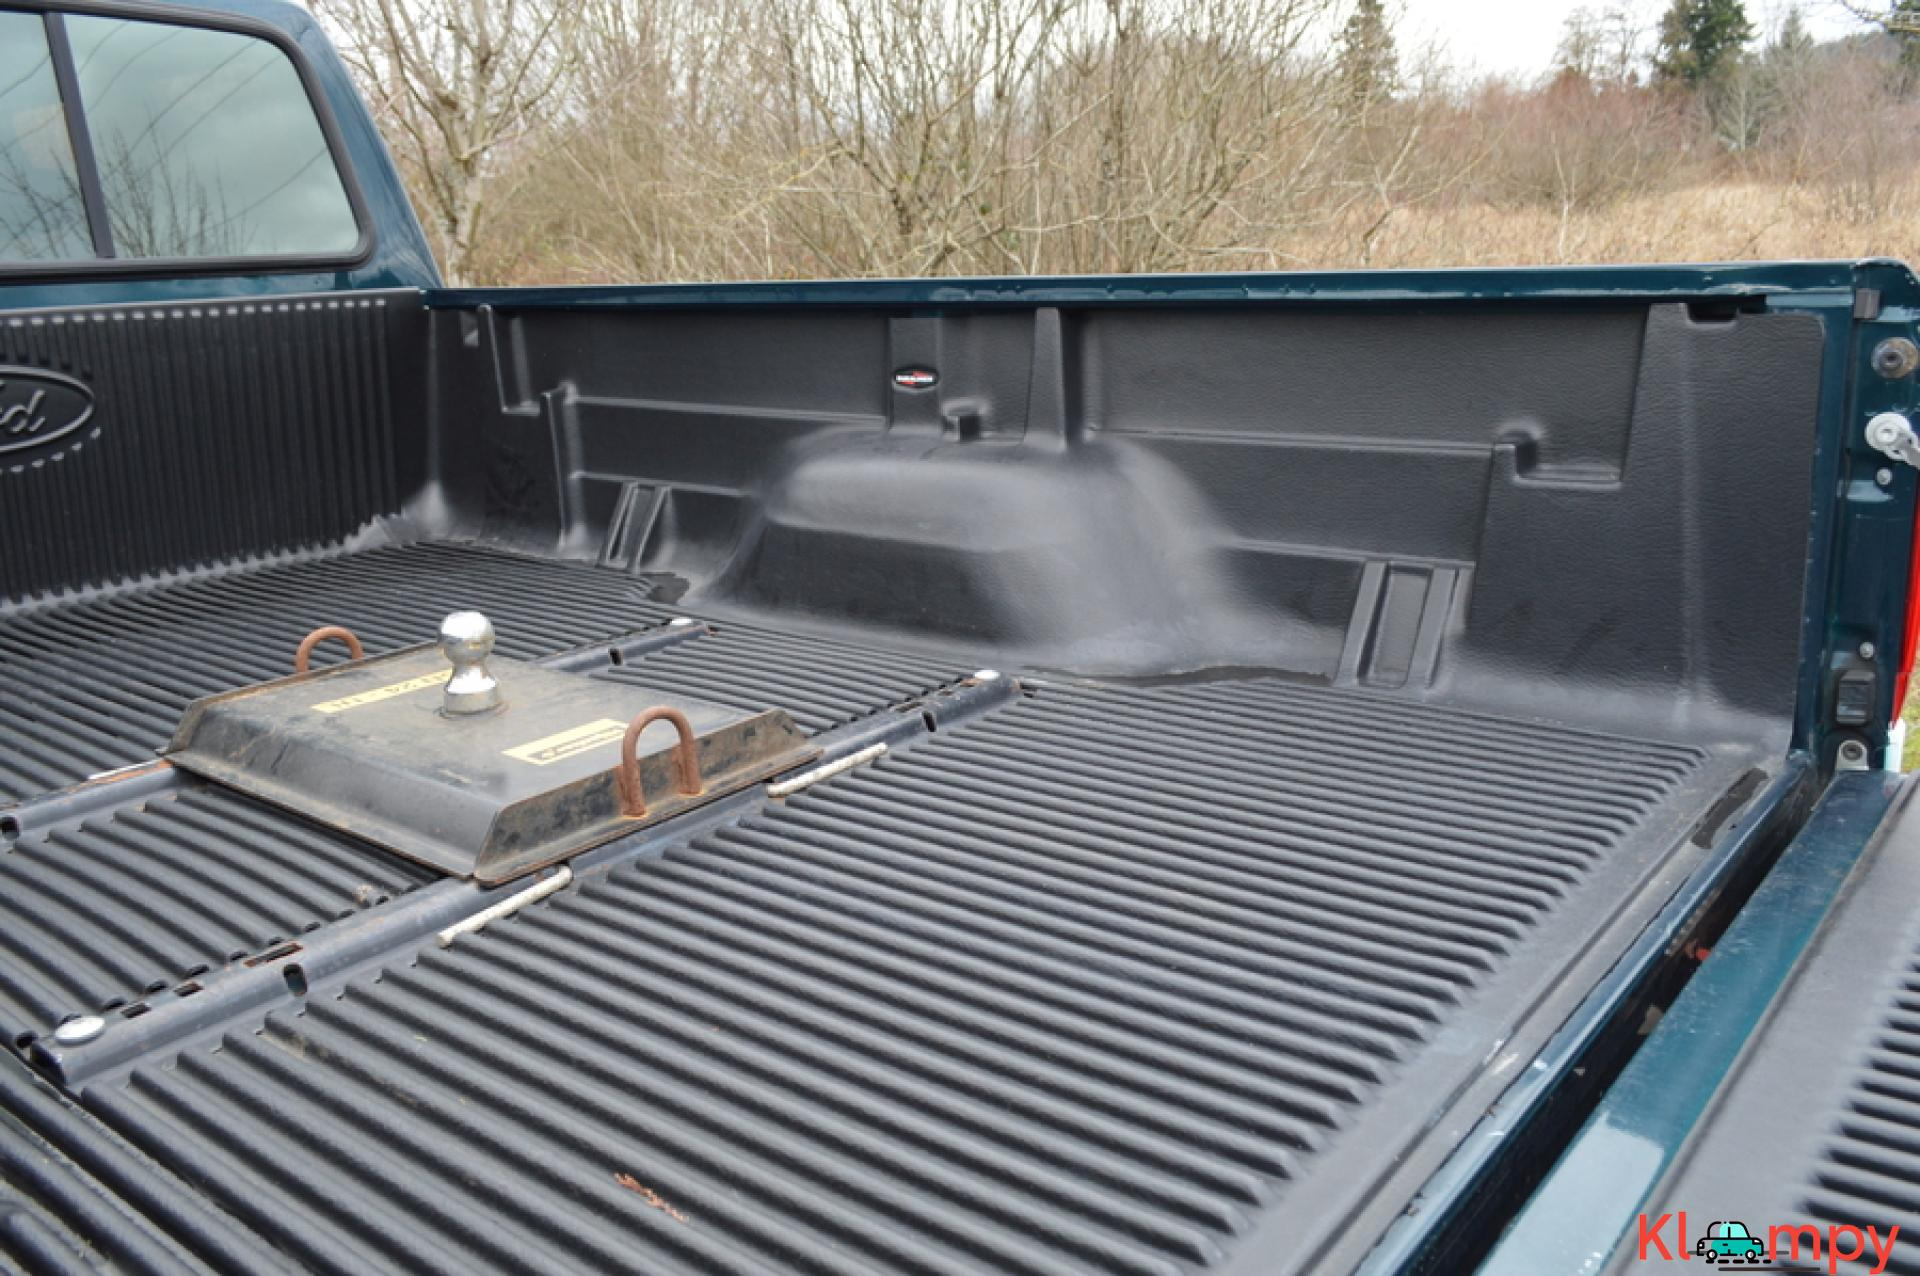 1997 FORD F-350 CREW CAB LONG BED 4WD 7.3L - 17/20